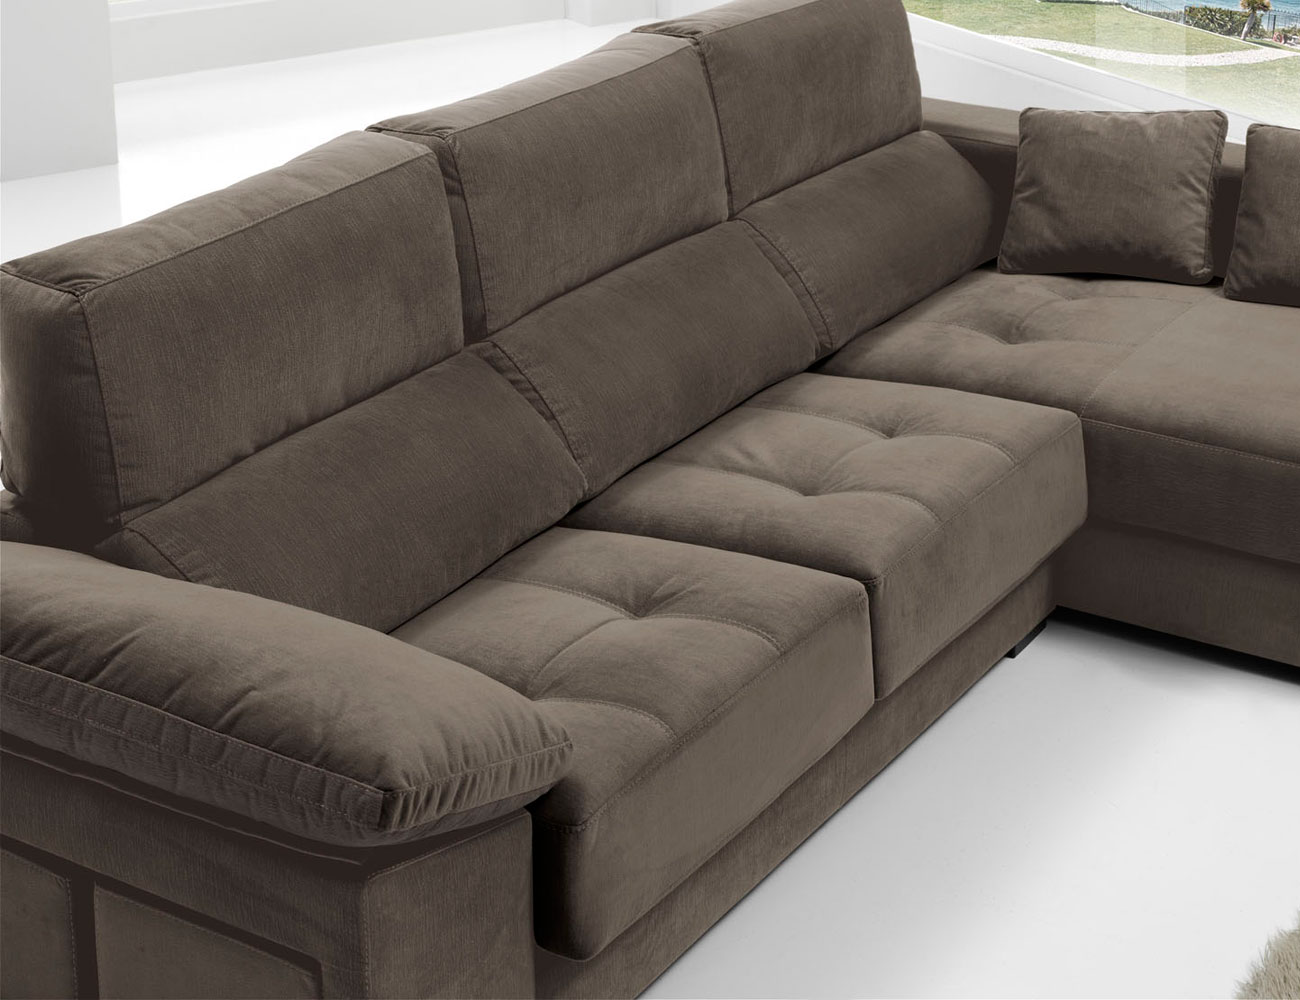 Sofa chaiselongue anti manchas bering pouf 2